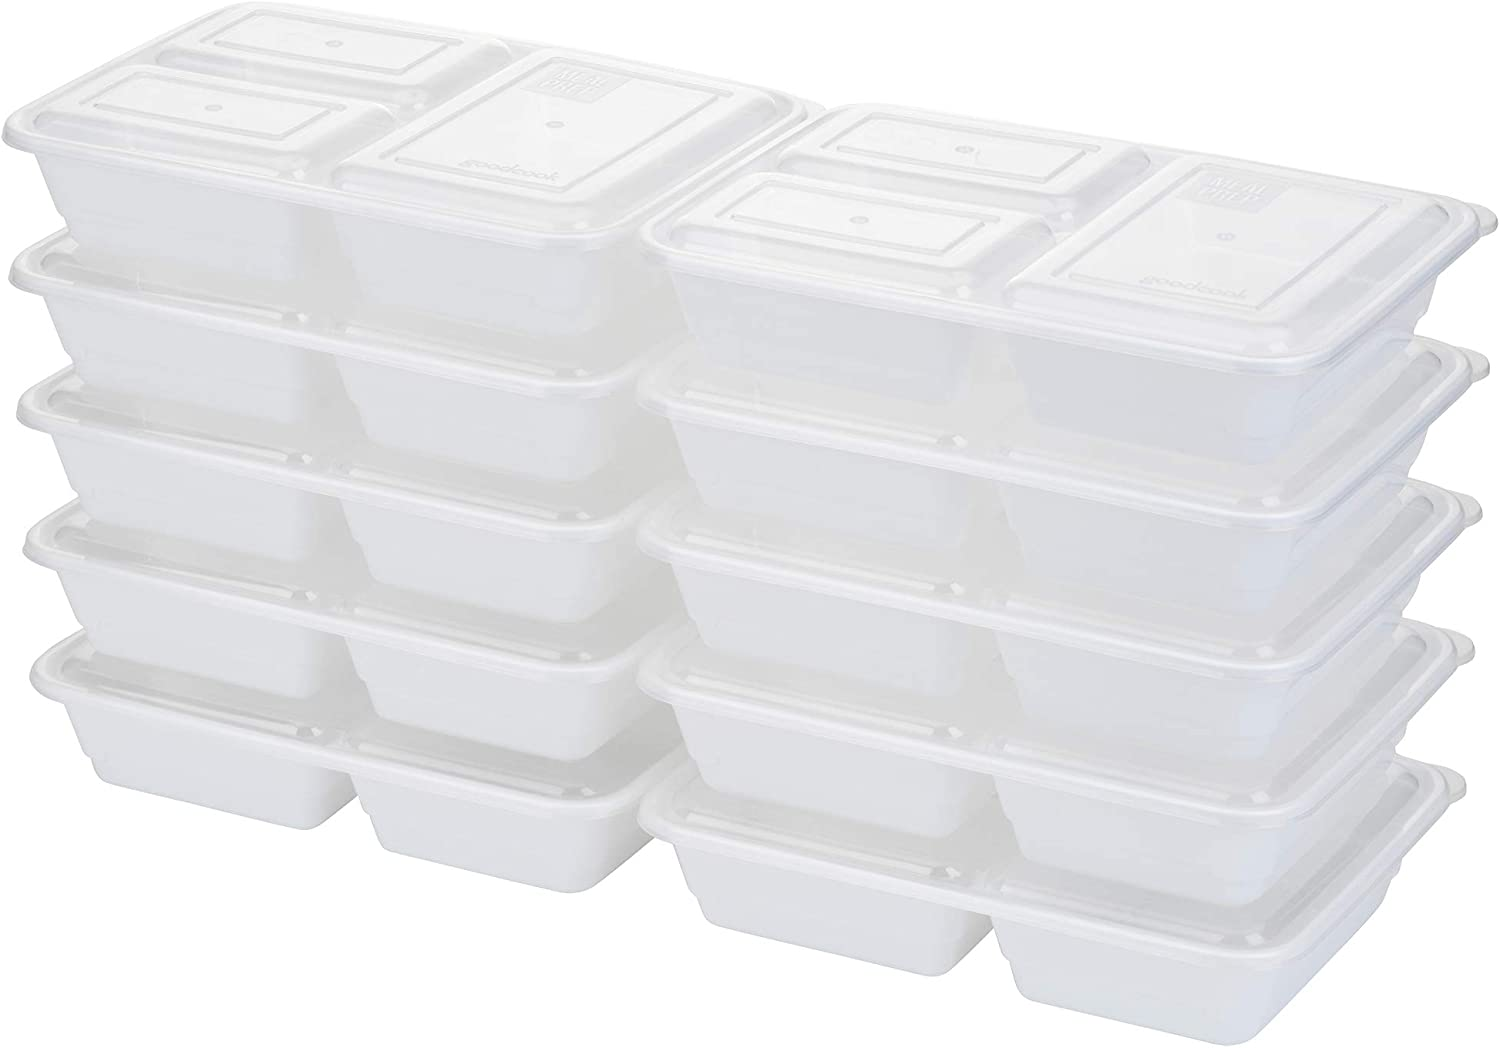 Good Cook 10785 Meal Prep, 3 Compartments BPA Free, Microwavable/Dishwasher/Freezer Safe, White